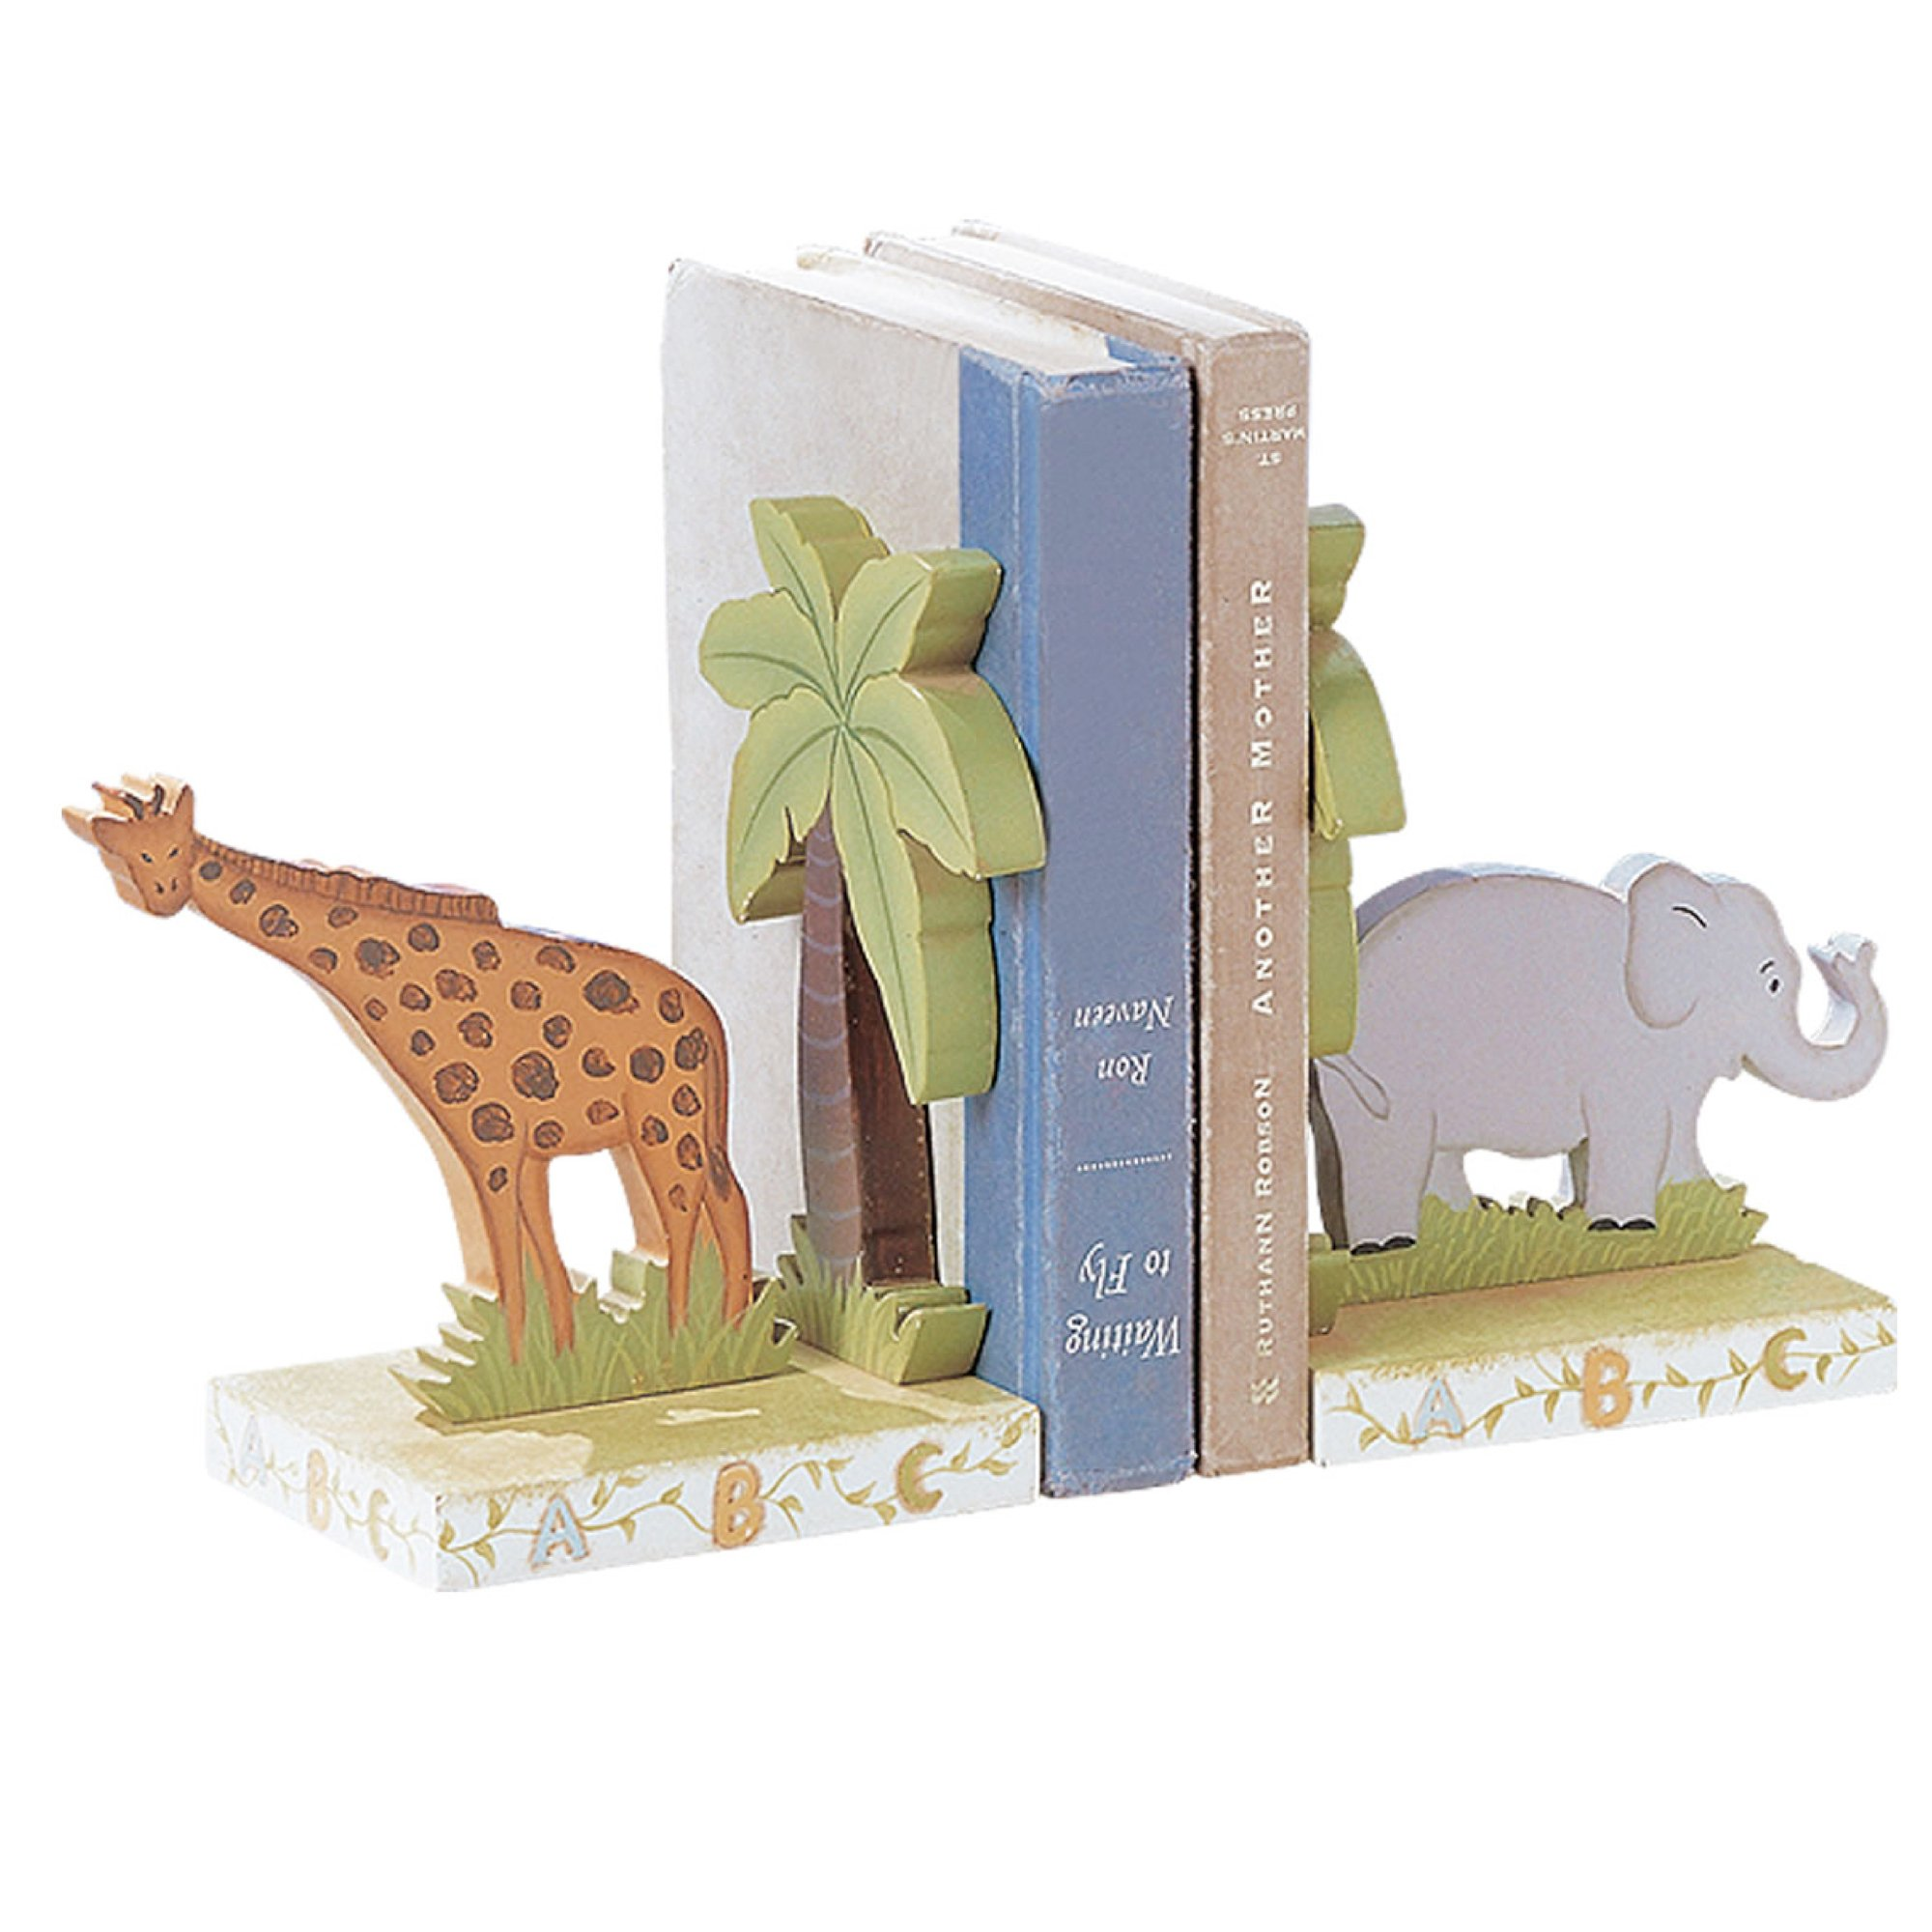 Teamson Design Corp Fantasy Fields - Alphabet Thematic Set of 2 Wooden Bookends for Kids | Imagination Inspiring Hand Crafted & Hand Painted Details   Non-Toxic, Lead Free Water-based Paint